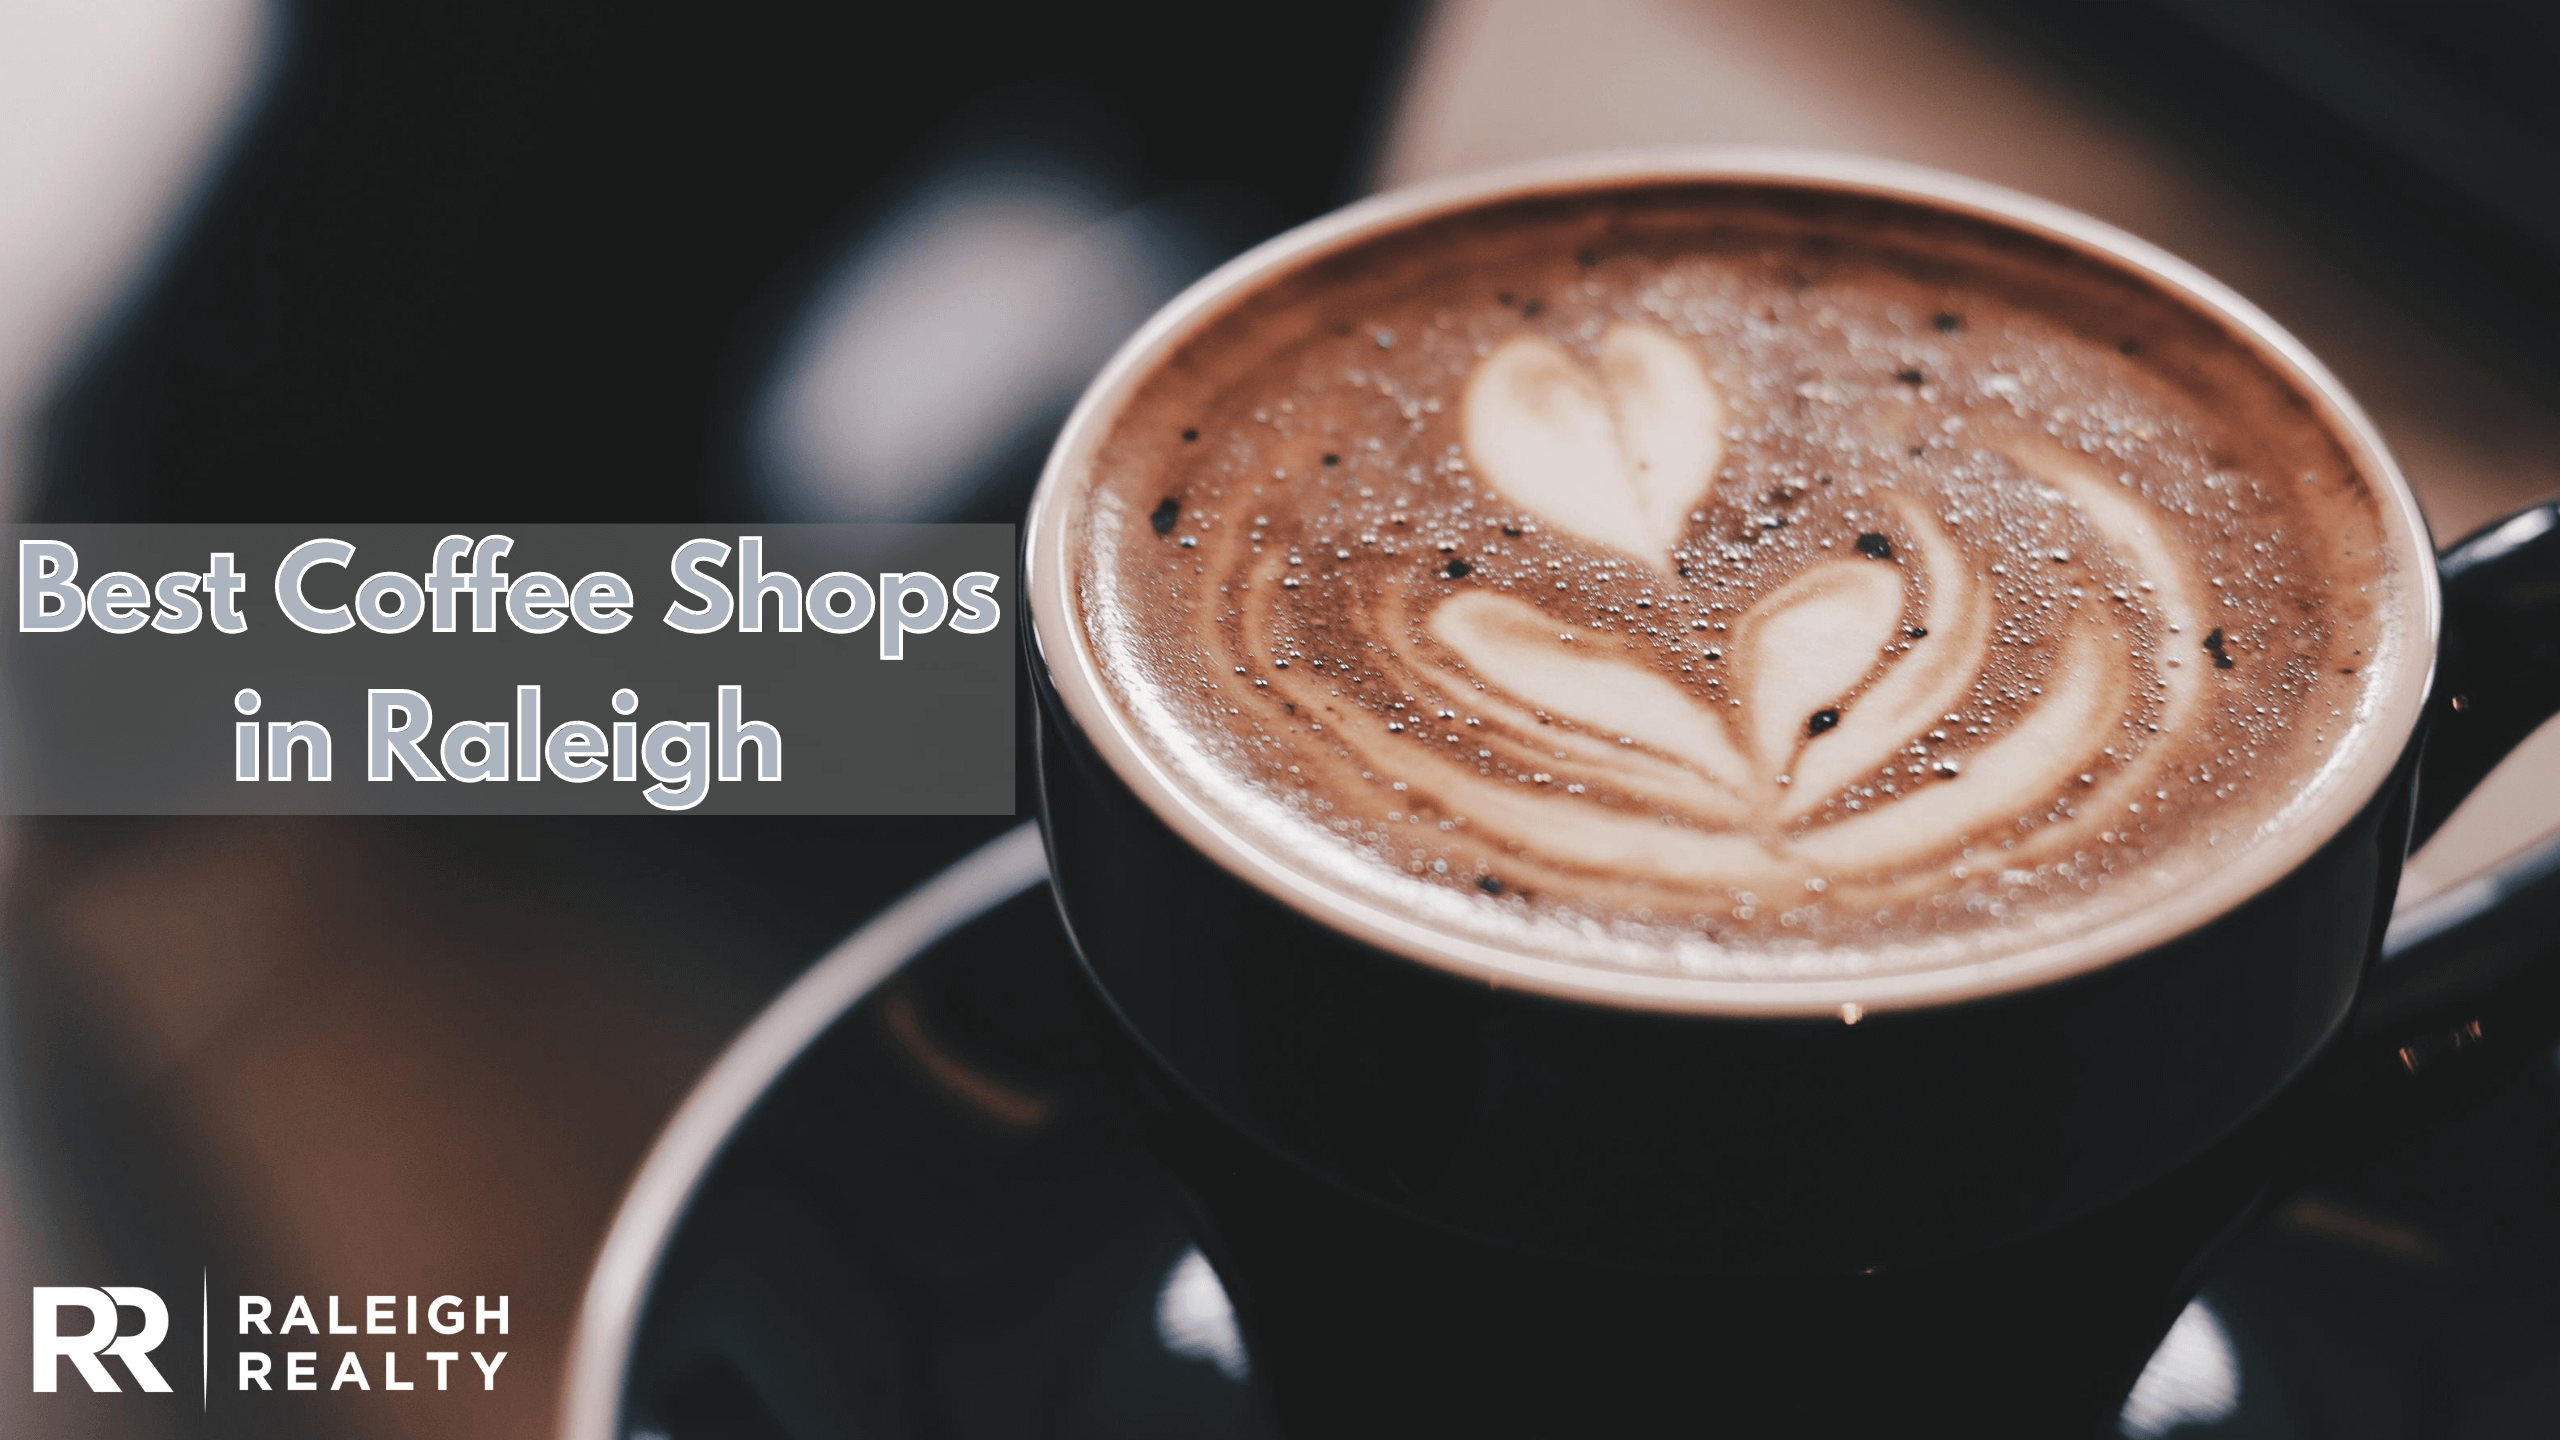 Best Coffee Shops in Raleigh - What are the best coffee shops in Raleigh, NC?